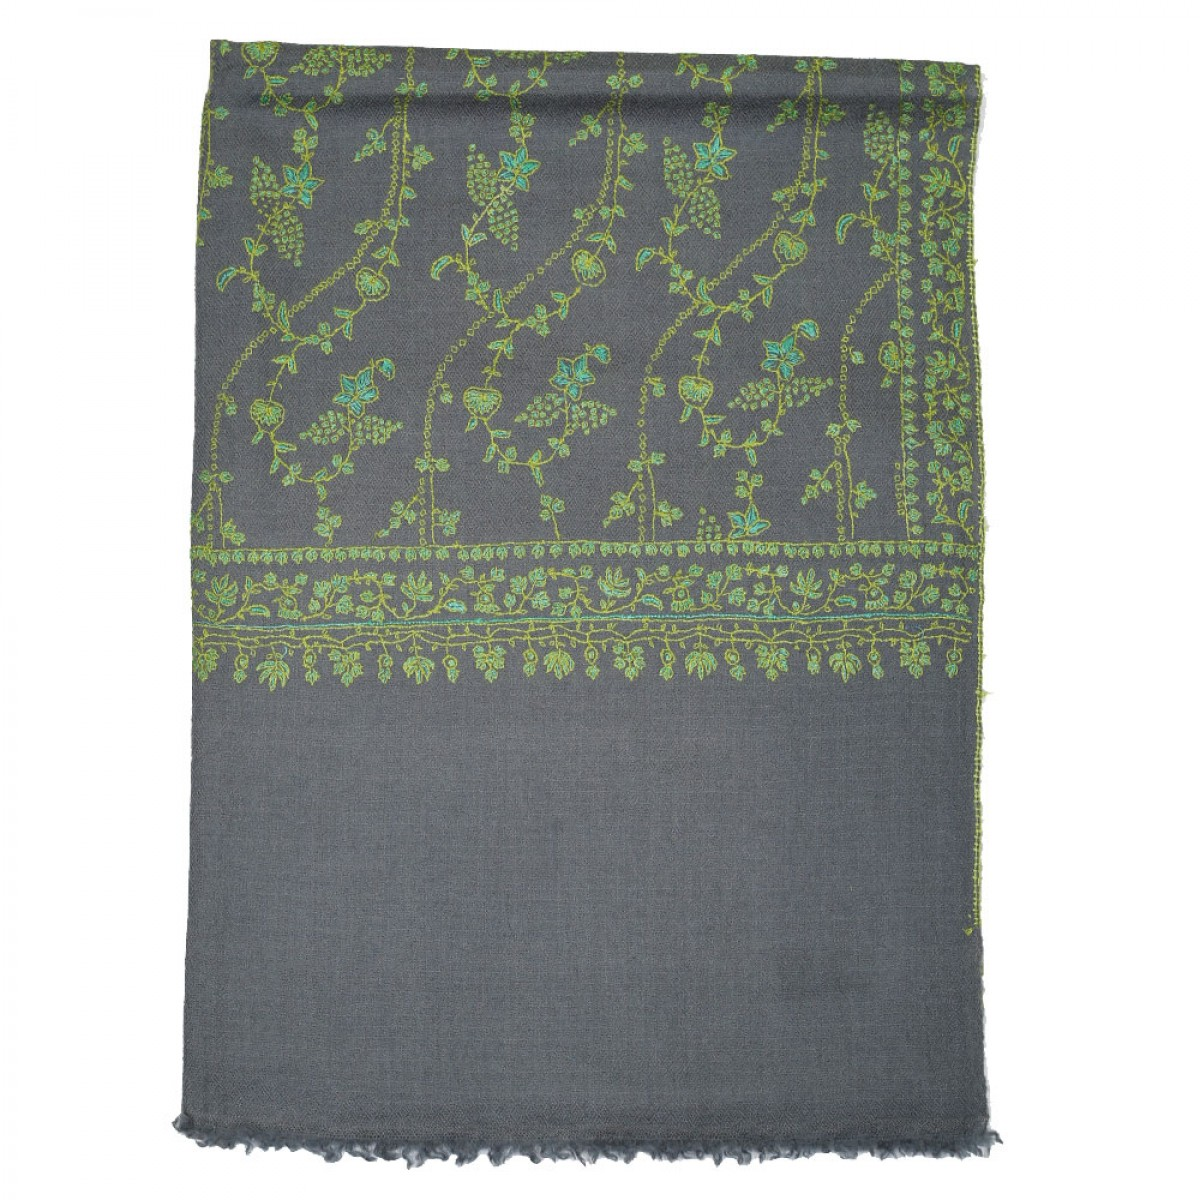 Embroidered Handloom Pashmina Stole - Grey Green